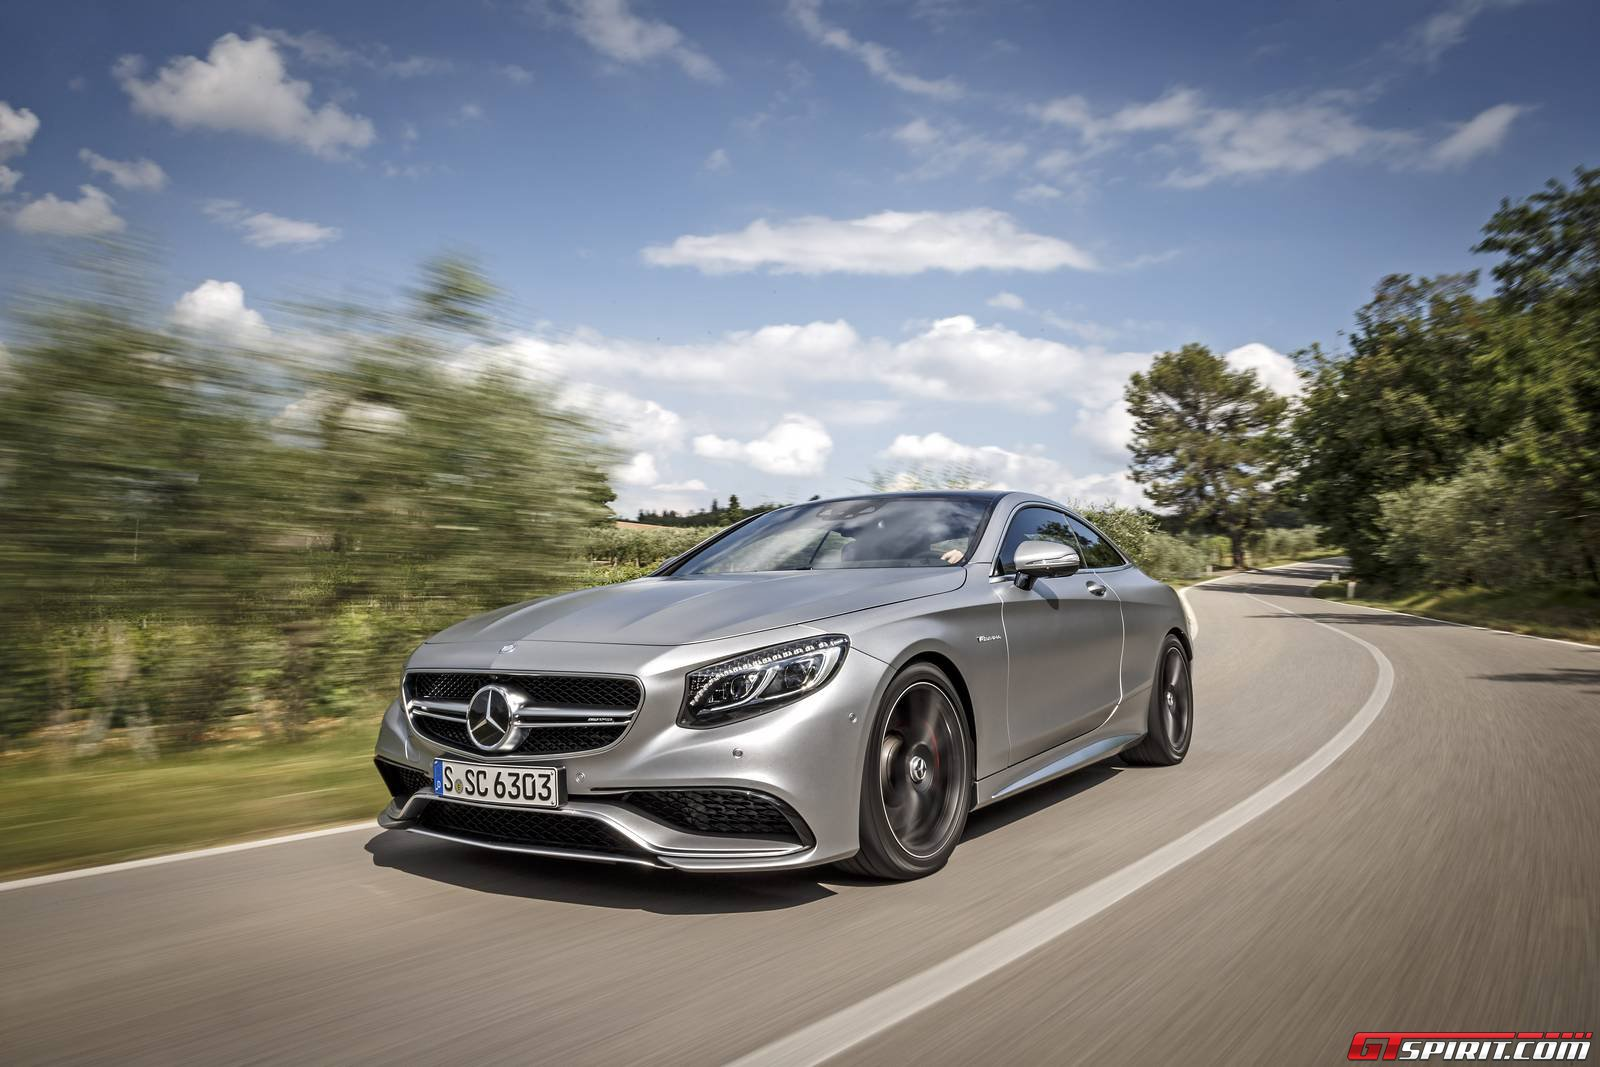 Fantastic 2015 MercedesBenz S500 Amp S63 AMG Coupe Review  GTspirit